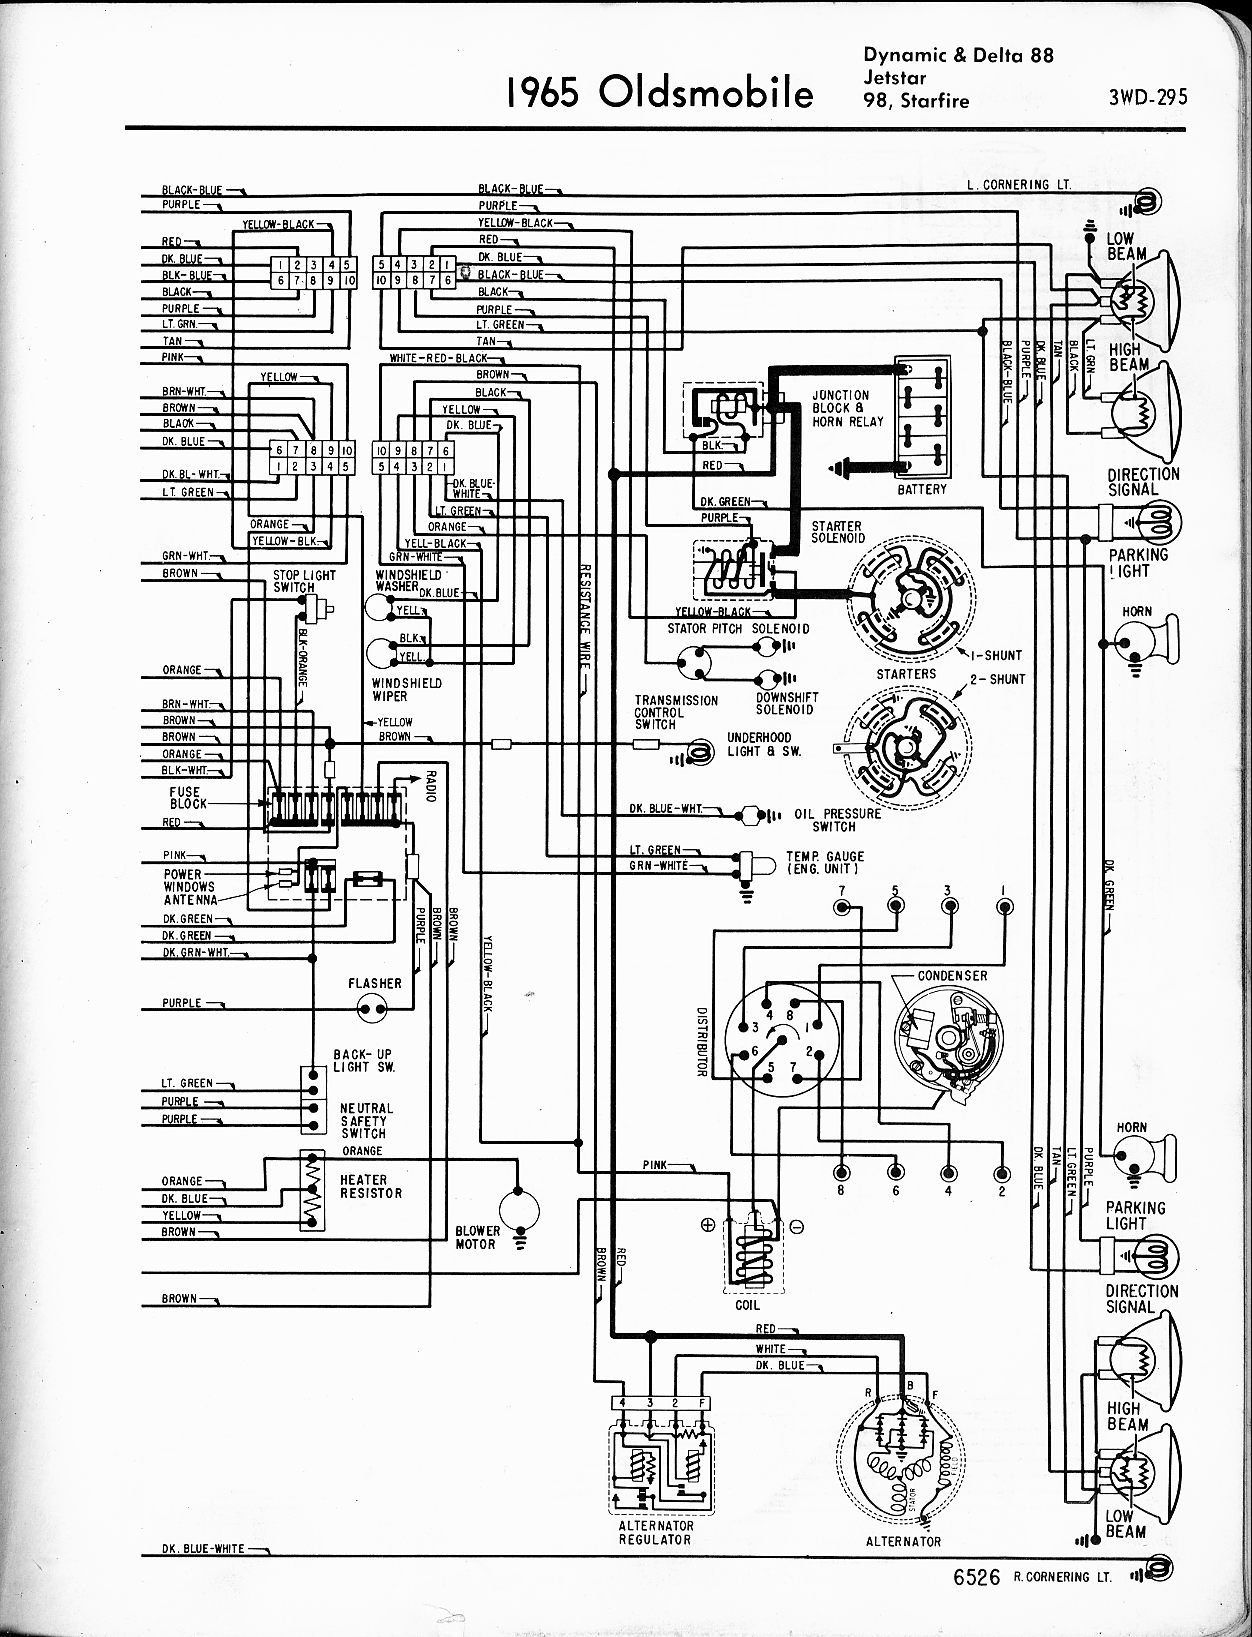 1946 Oldsmobile Wiring Diagram Libraries Hydro Lectric Power System For 47 Chevrolet Convertible Bodies 1941 Librarywillys Mb Furthermore Besides Chevy Truck